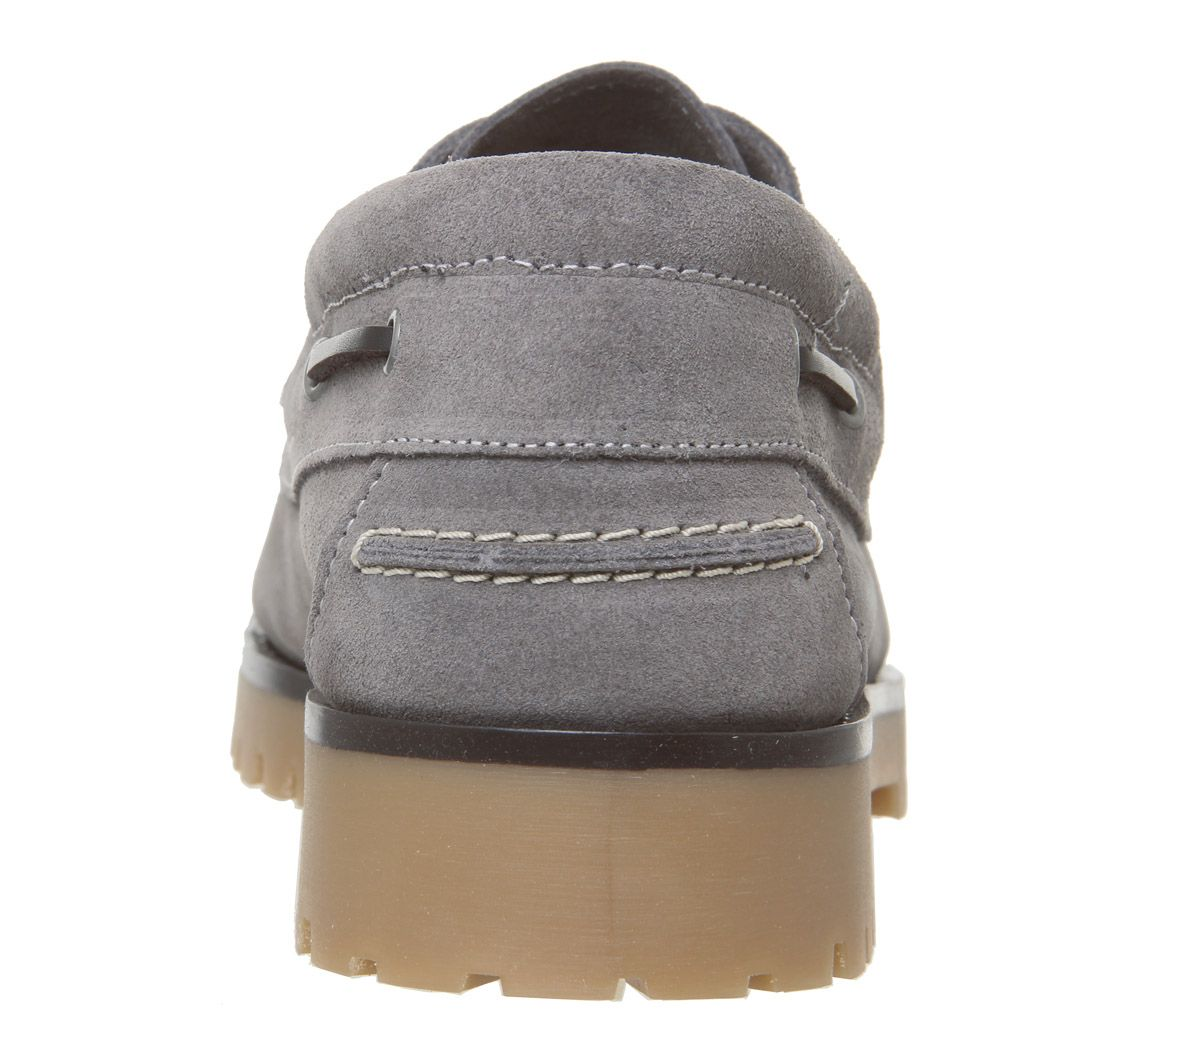 Mens-Office-Lug-Boat-Shoes-Grey-Suede-Casual-Shoes thumbnail 4